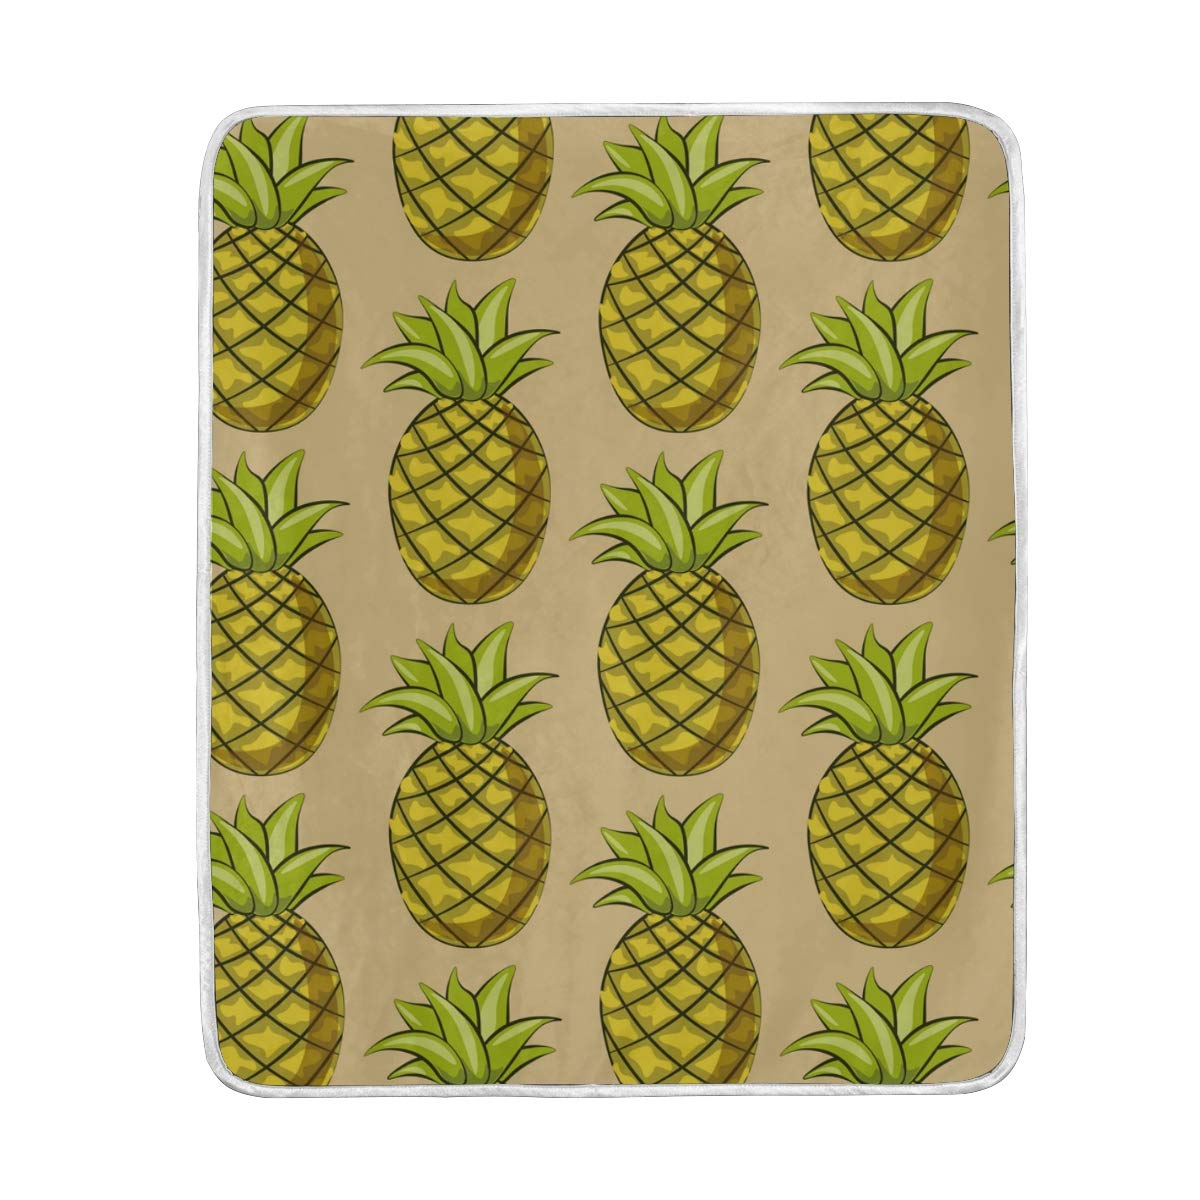 Fantastic Amazon Com Pineapple Pattern Yellow Throw Blanket Bed Couch Creativecarmelina Interior Chair Design Creativecarmelinacom